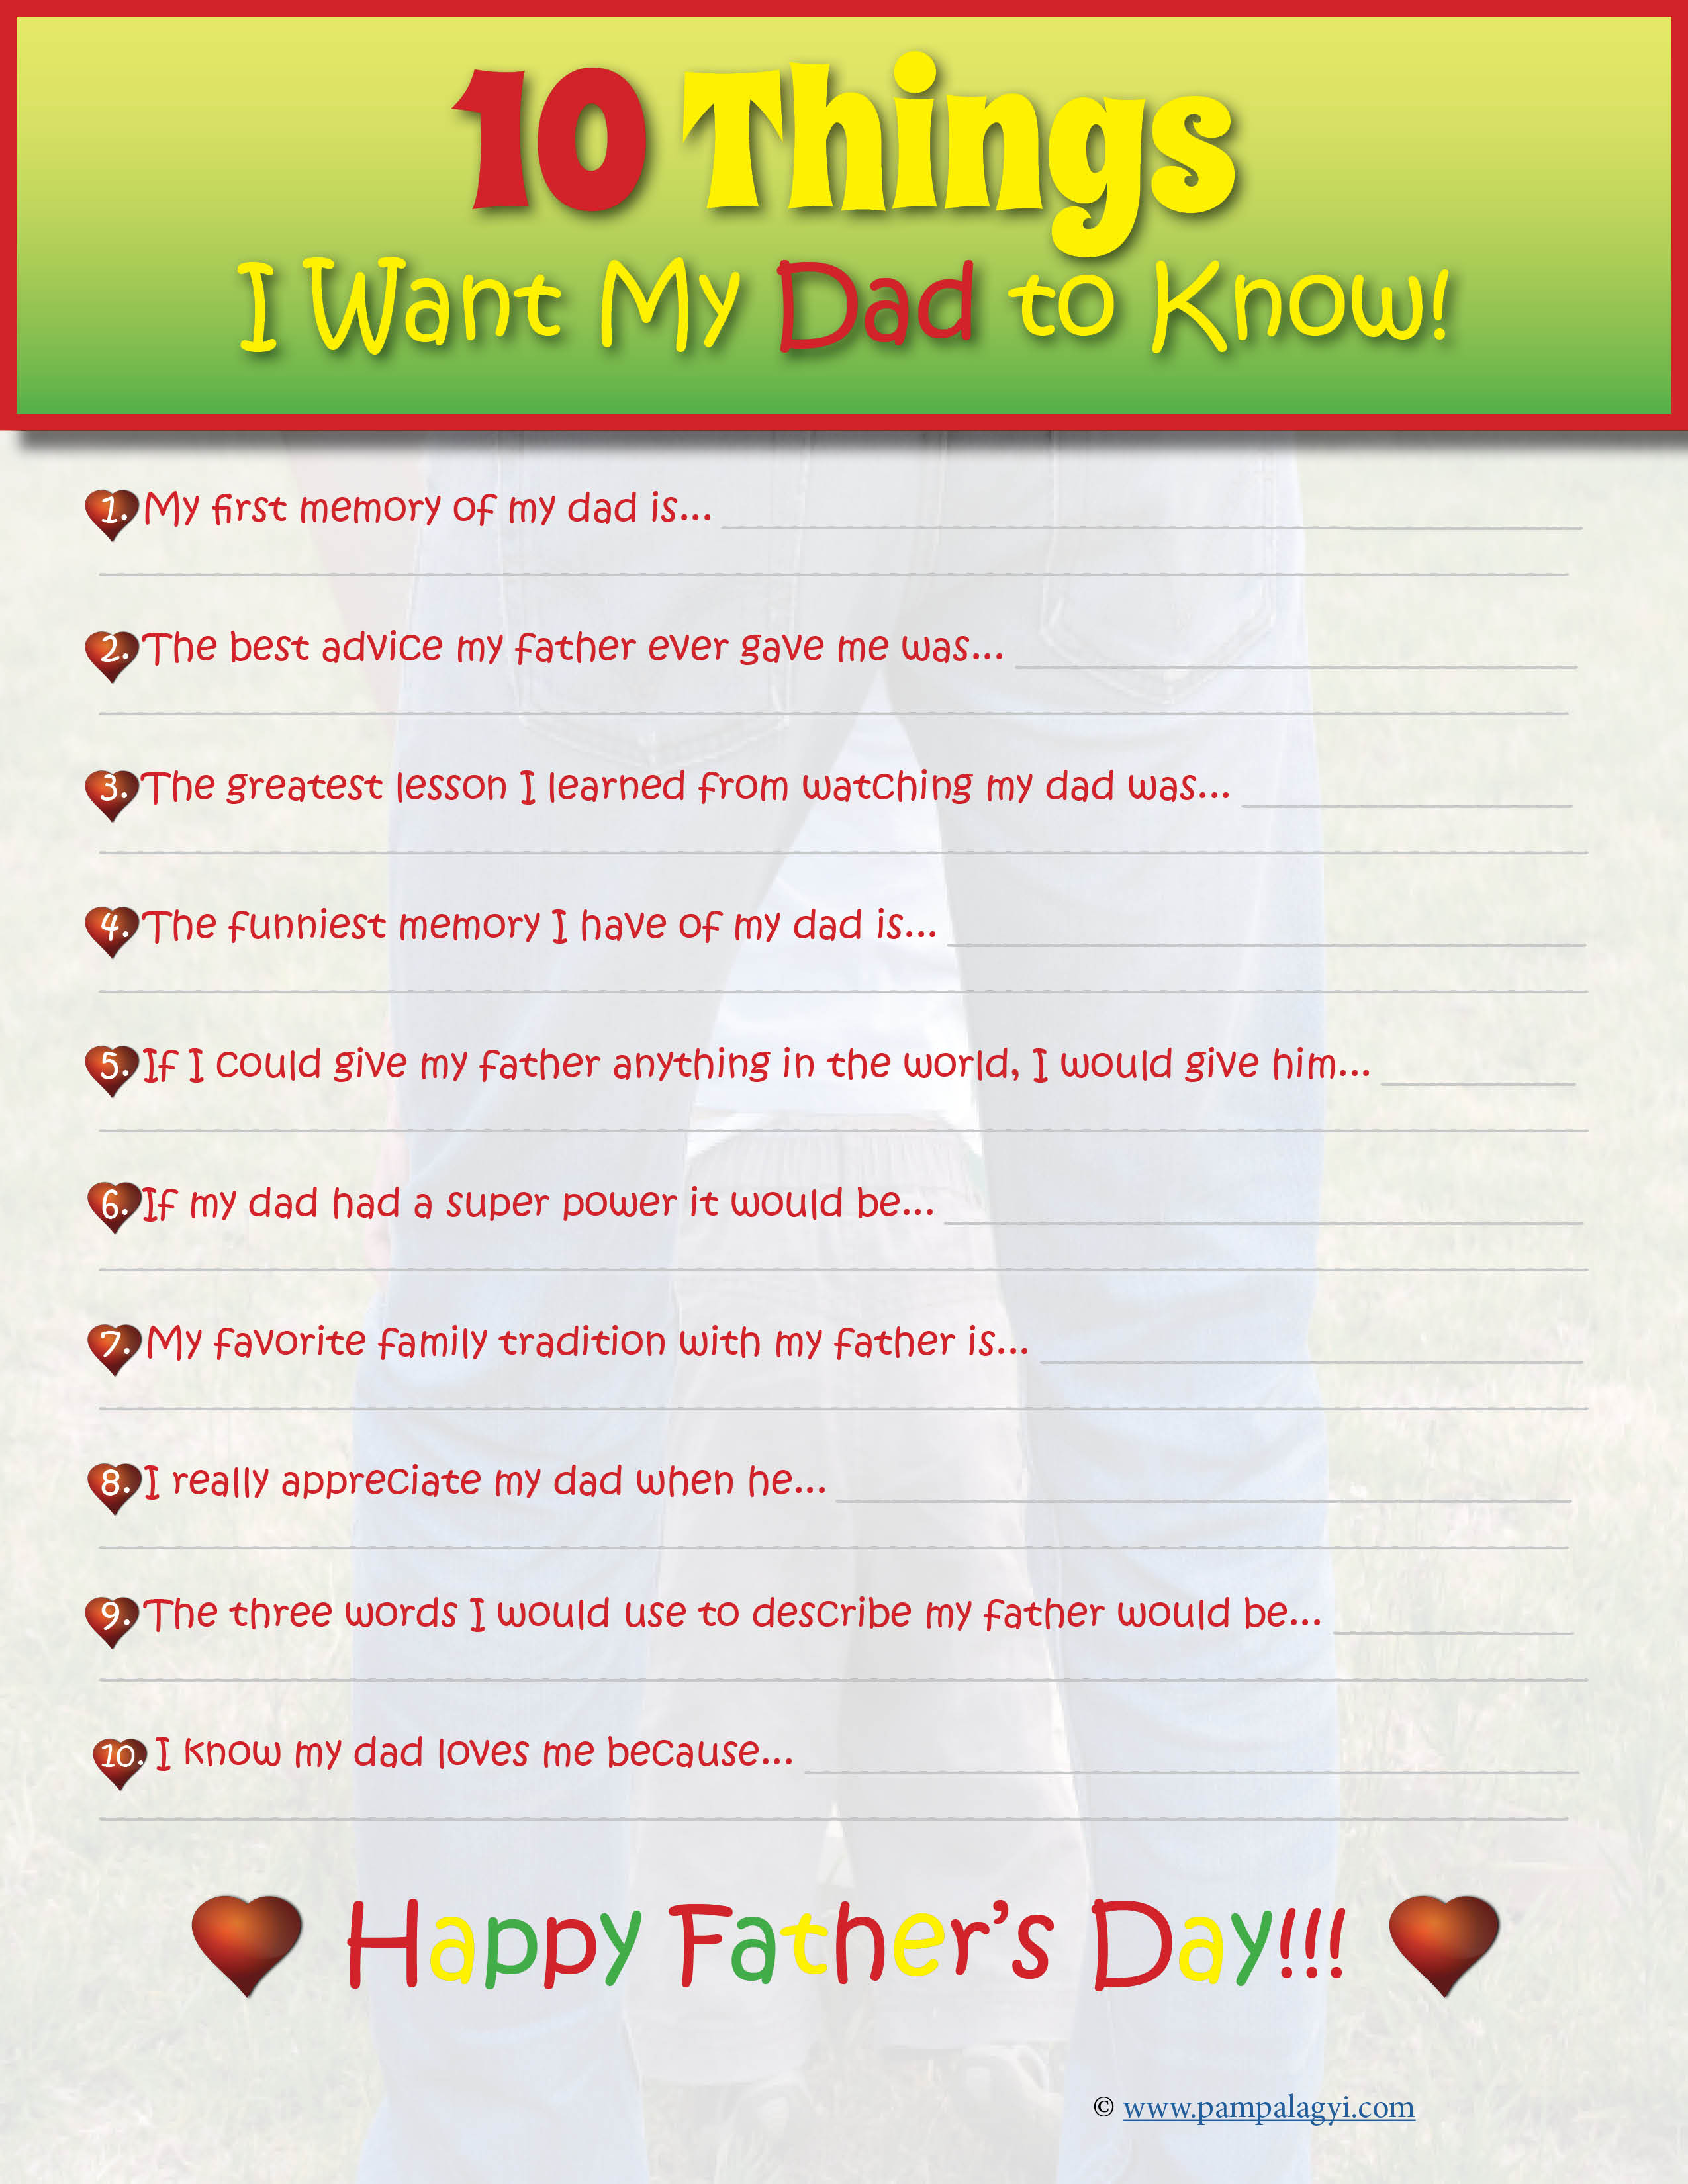 Father's Day Printable 10 Things